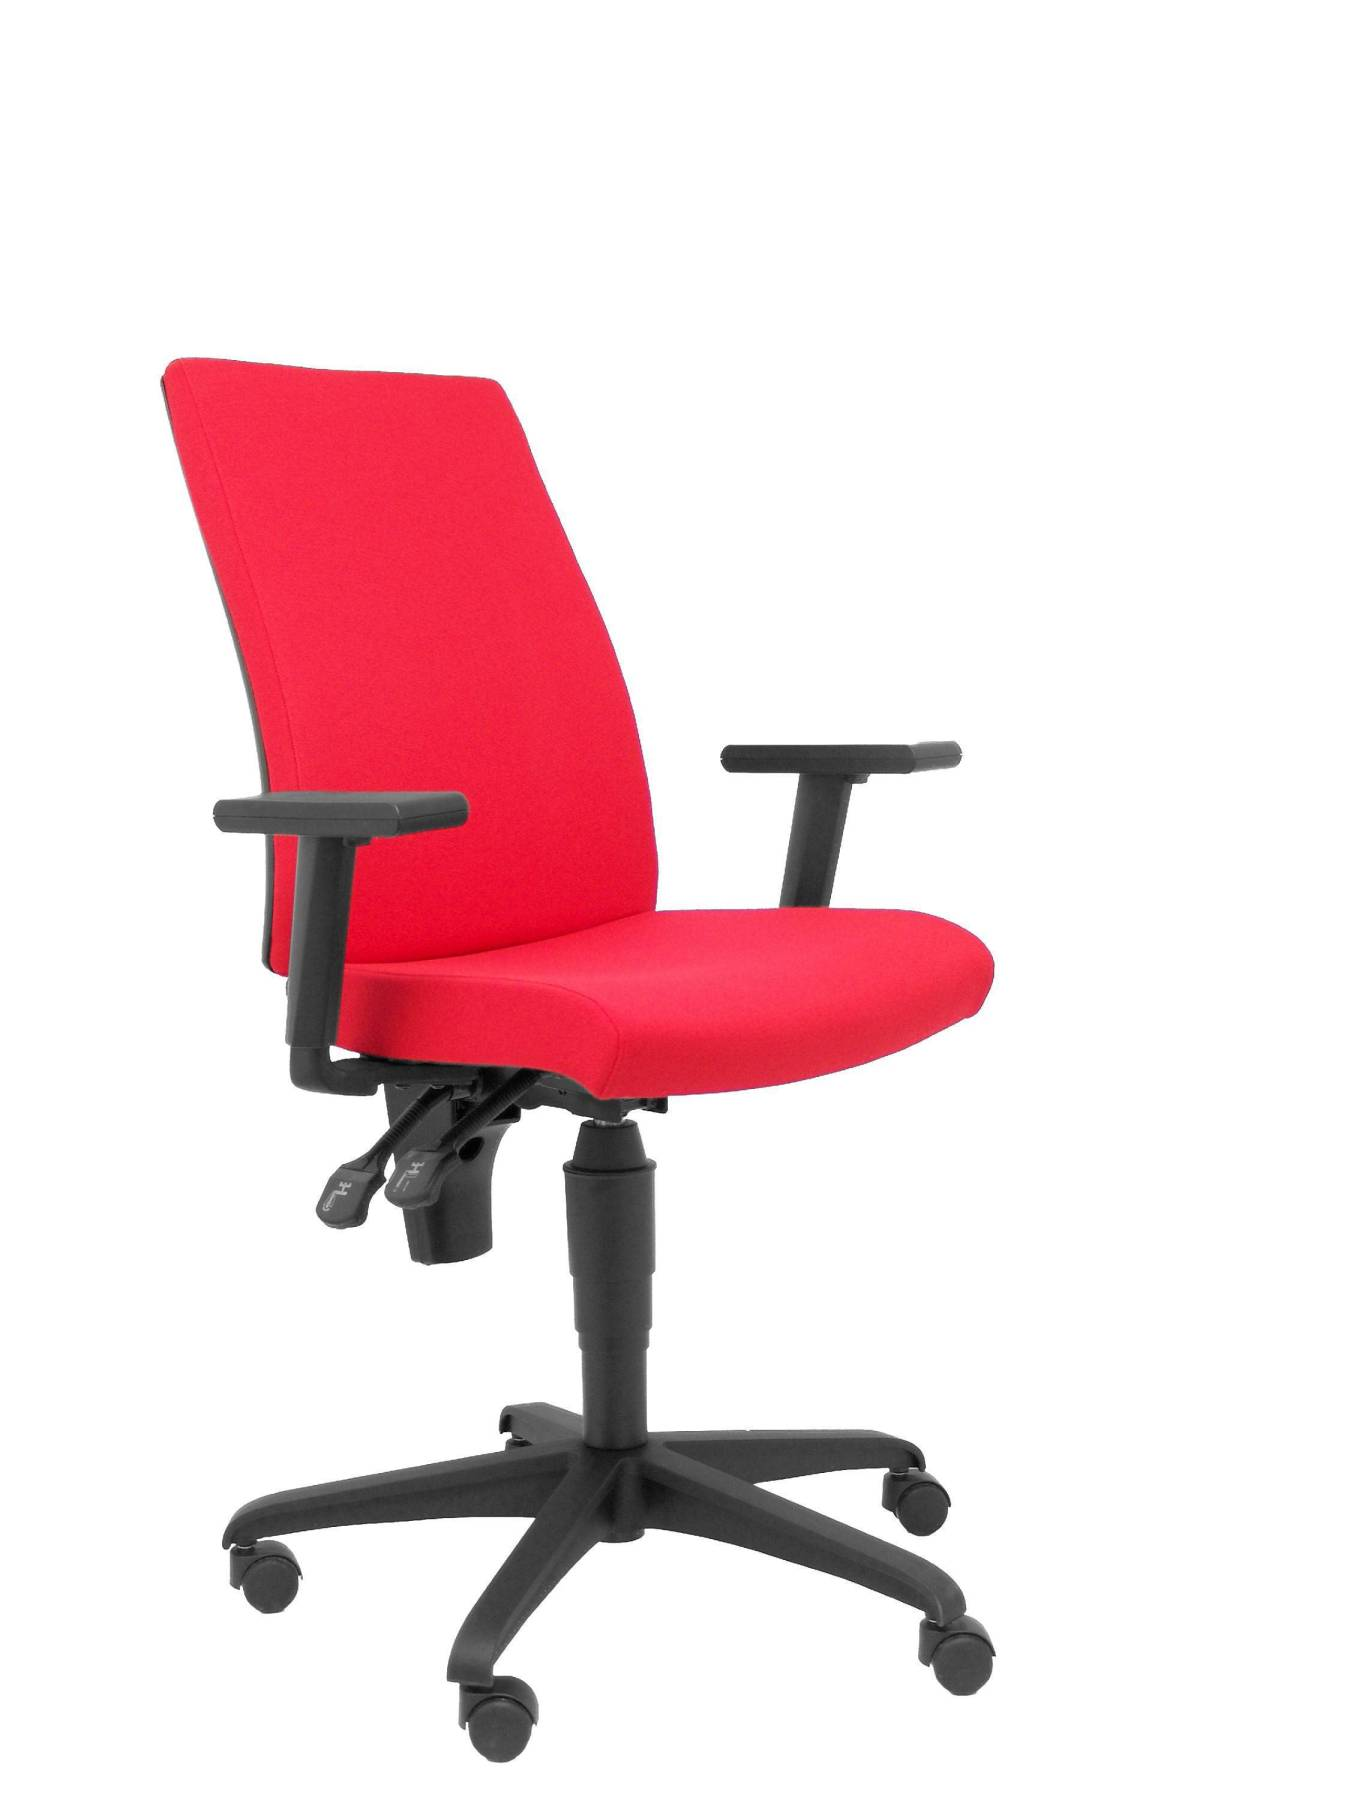 Chair's Office Desk Ergonomic, Swivel And Dimmable In High Altitude-up Seat And Backstop Upholstered In Tissue ARAN Red Color P